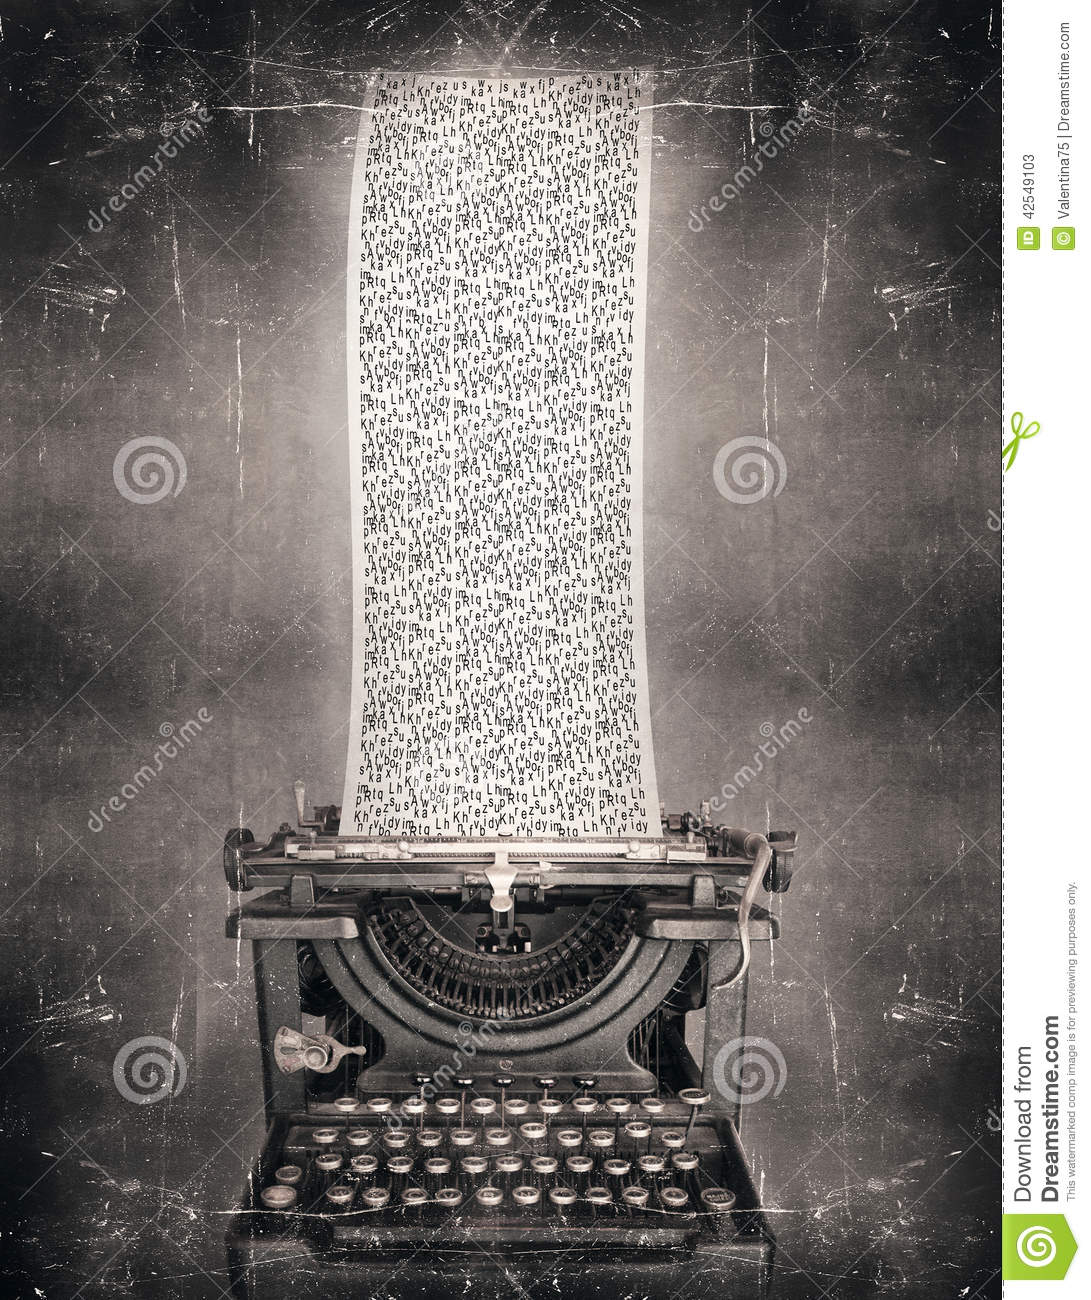 Creative Inspiration Surreal Imagine Black White Beautiful Classic Old Fashioned Typewriter Very Long Paper on creative writing 3